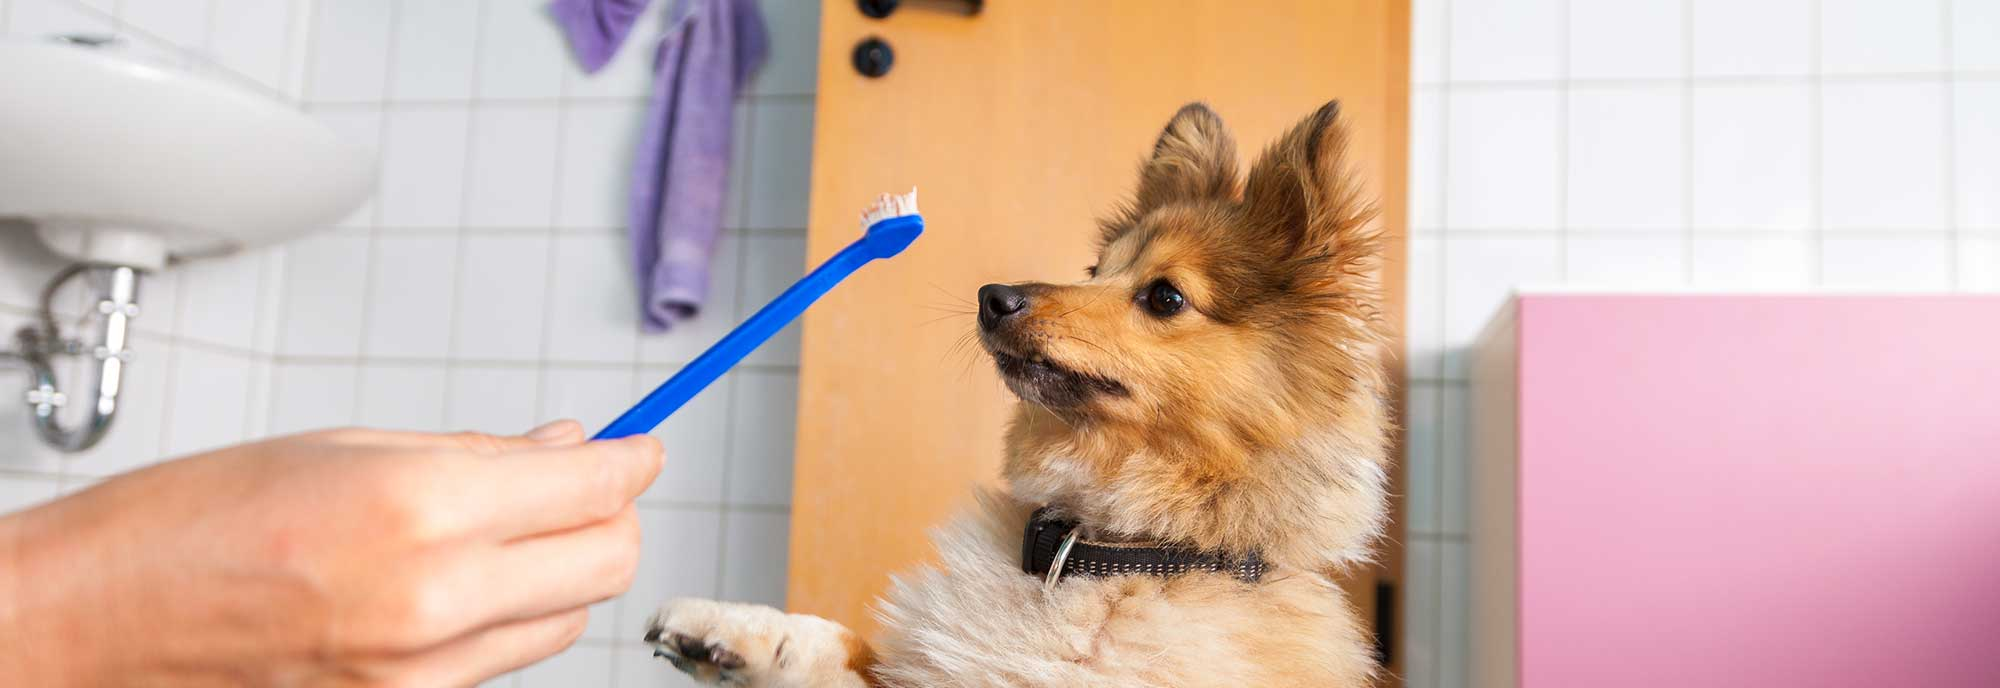 Dog wondering what that tooth brush is